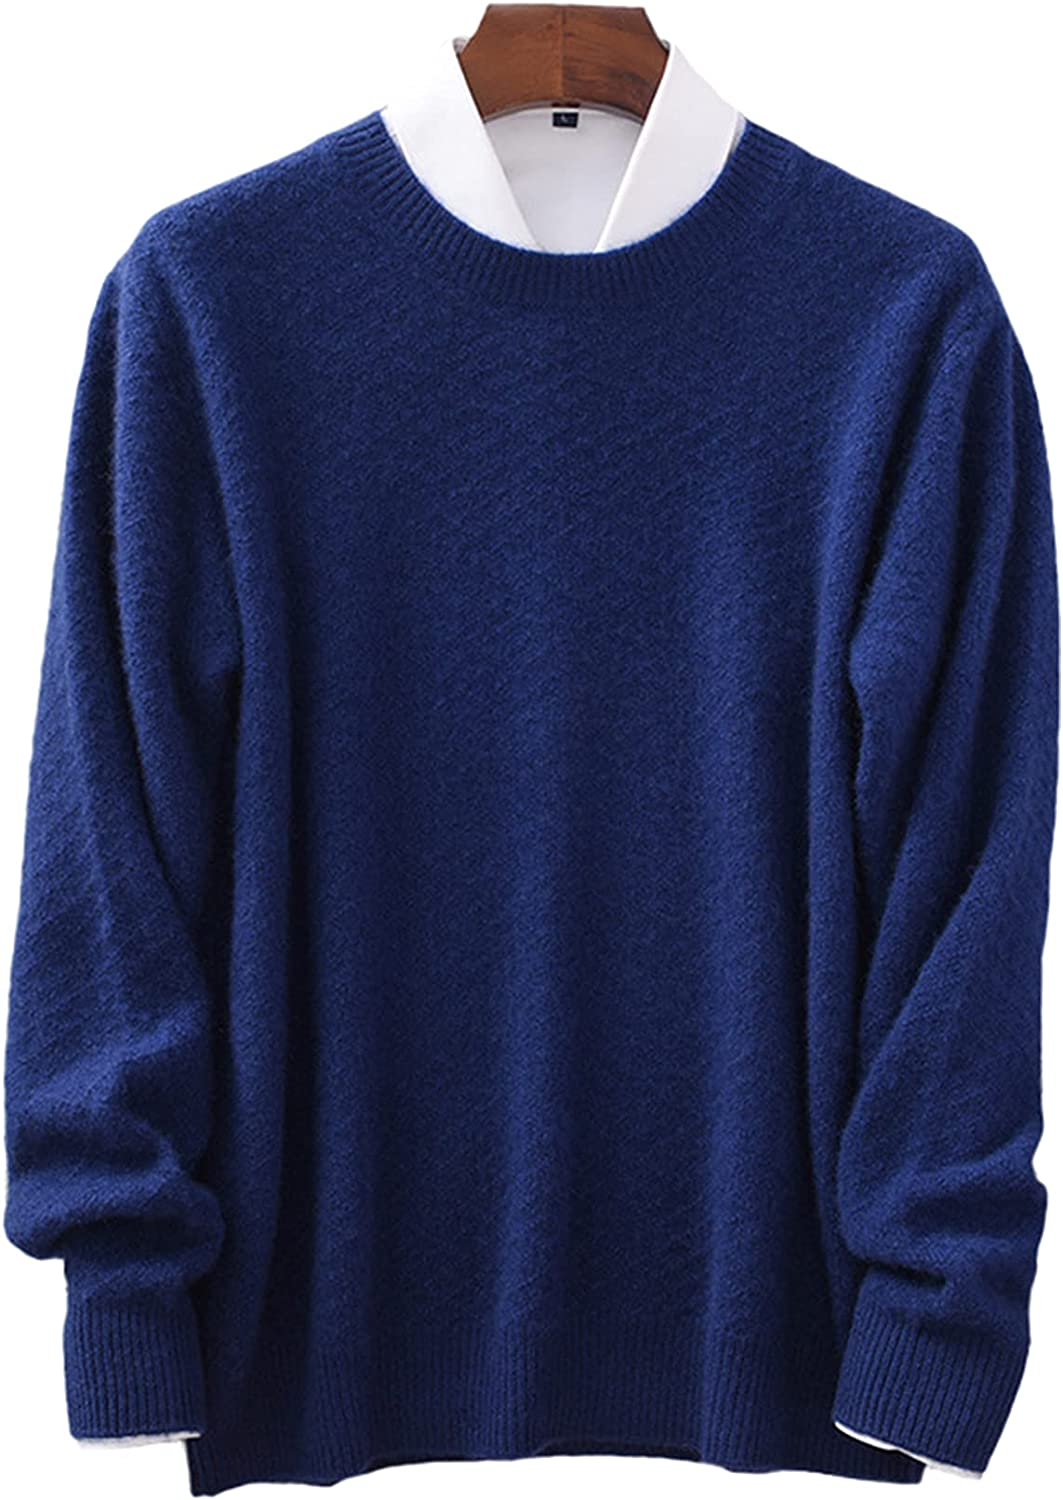 Men's Crewneck Cashmere Sweater Solid Color Twist Thicken Mid-Length Business Casual Large Size Pullover Daily